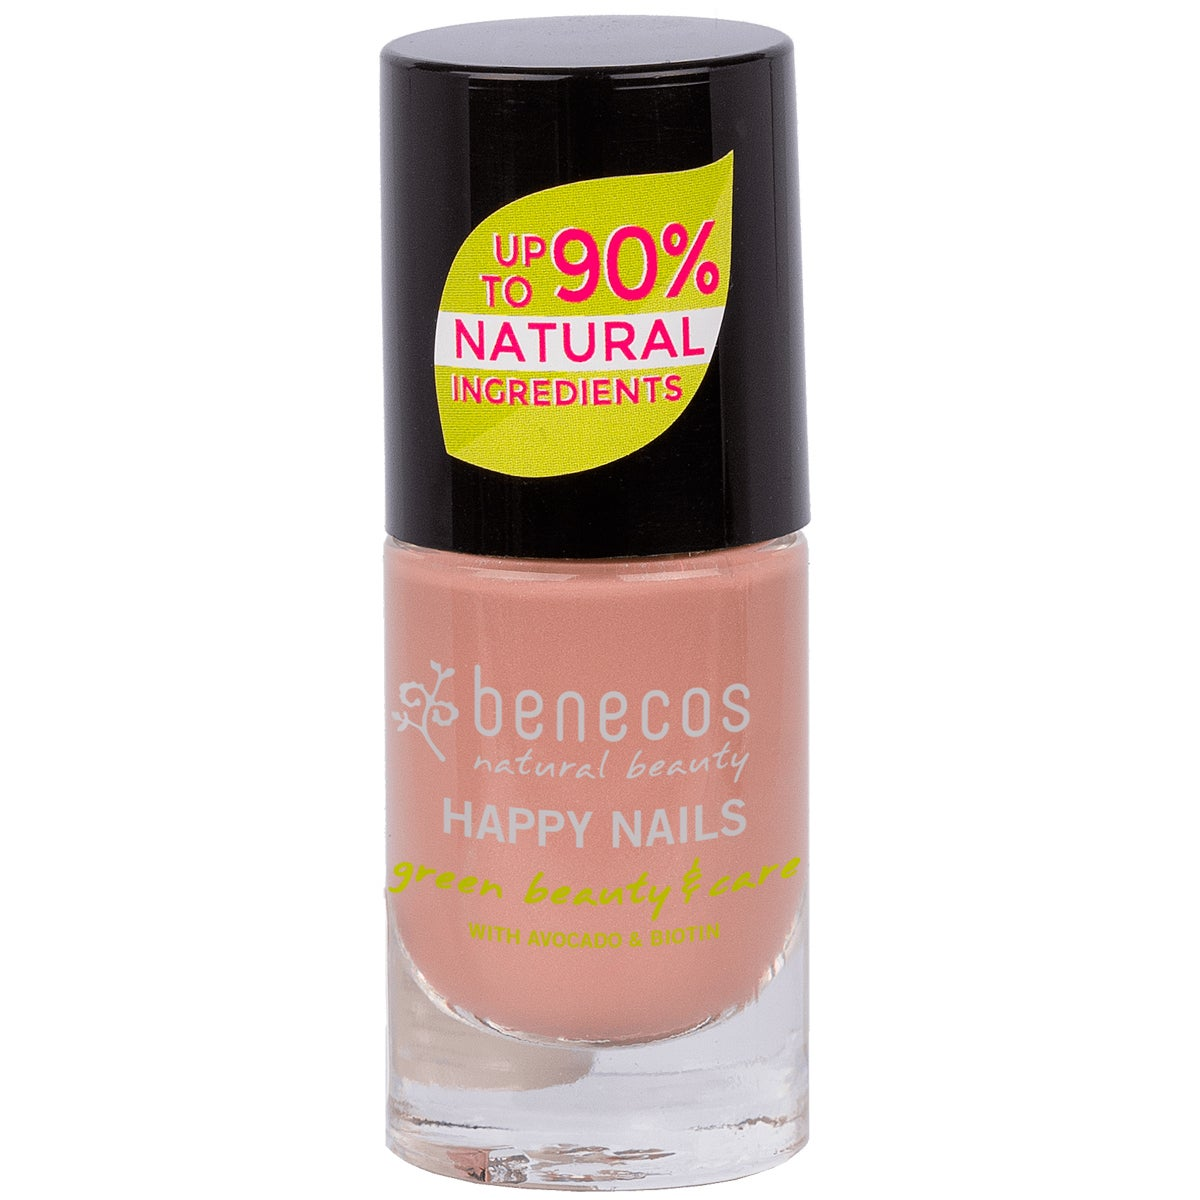 Benecos Nail Polish - you-nique